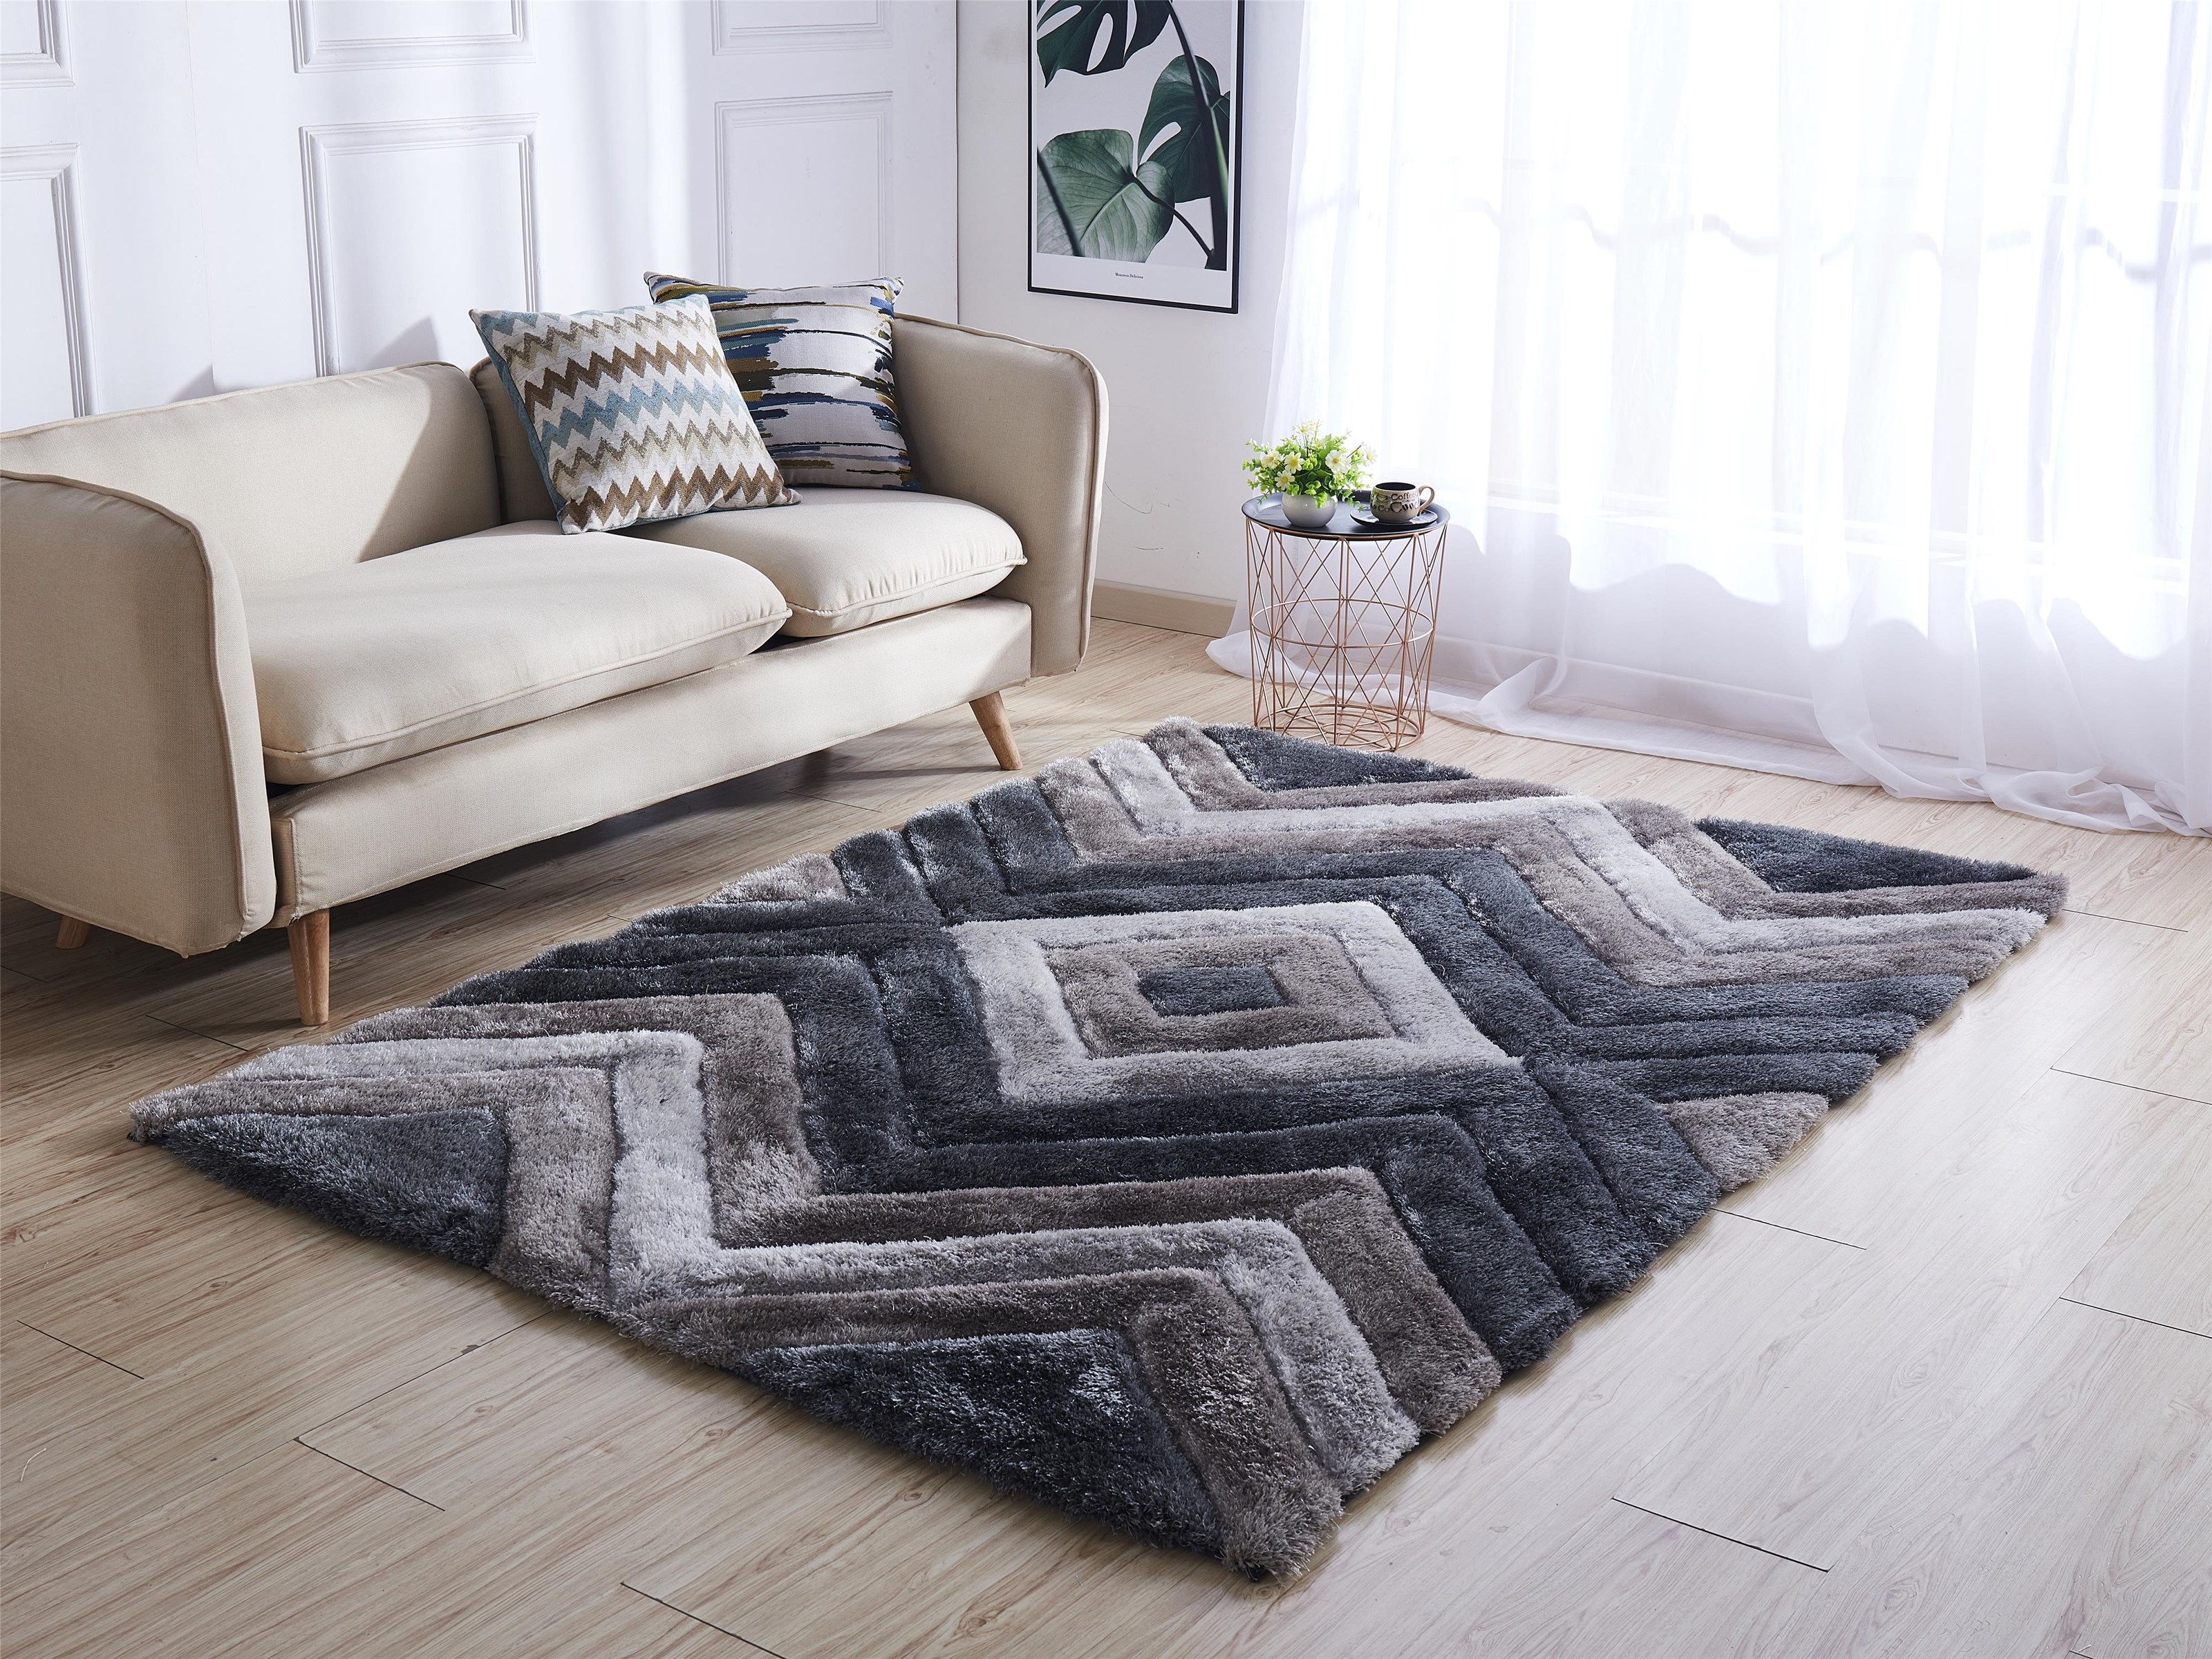 Mateos 8X10 Area Rug by MDA Rugs at Darvin Furniture